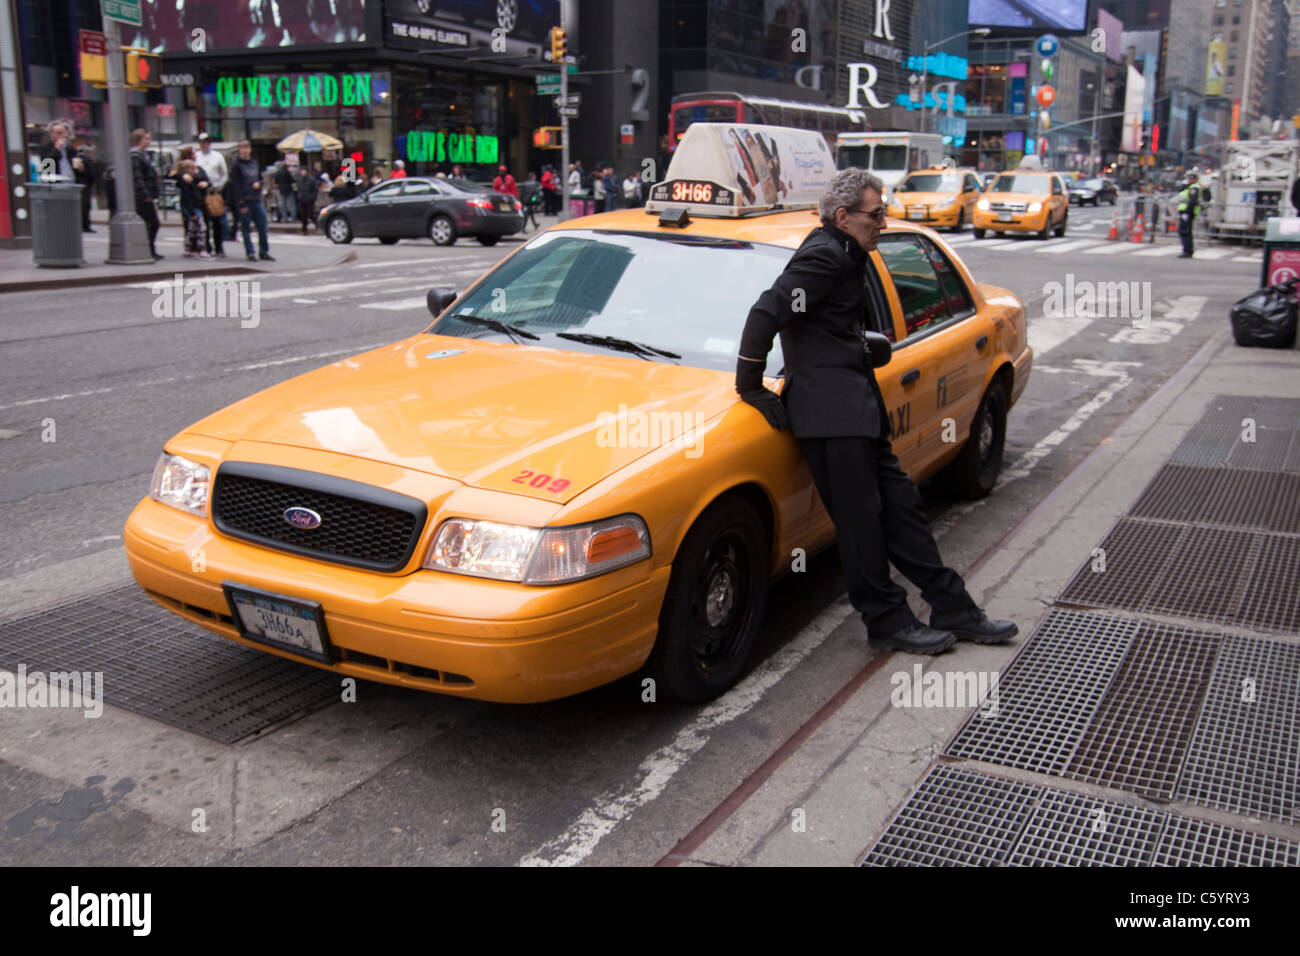 A driver leaning on his Yellow cab in Times Square New York. - Stock Image